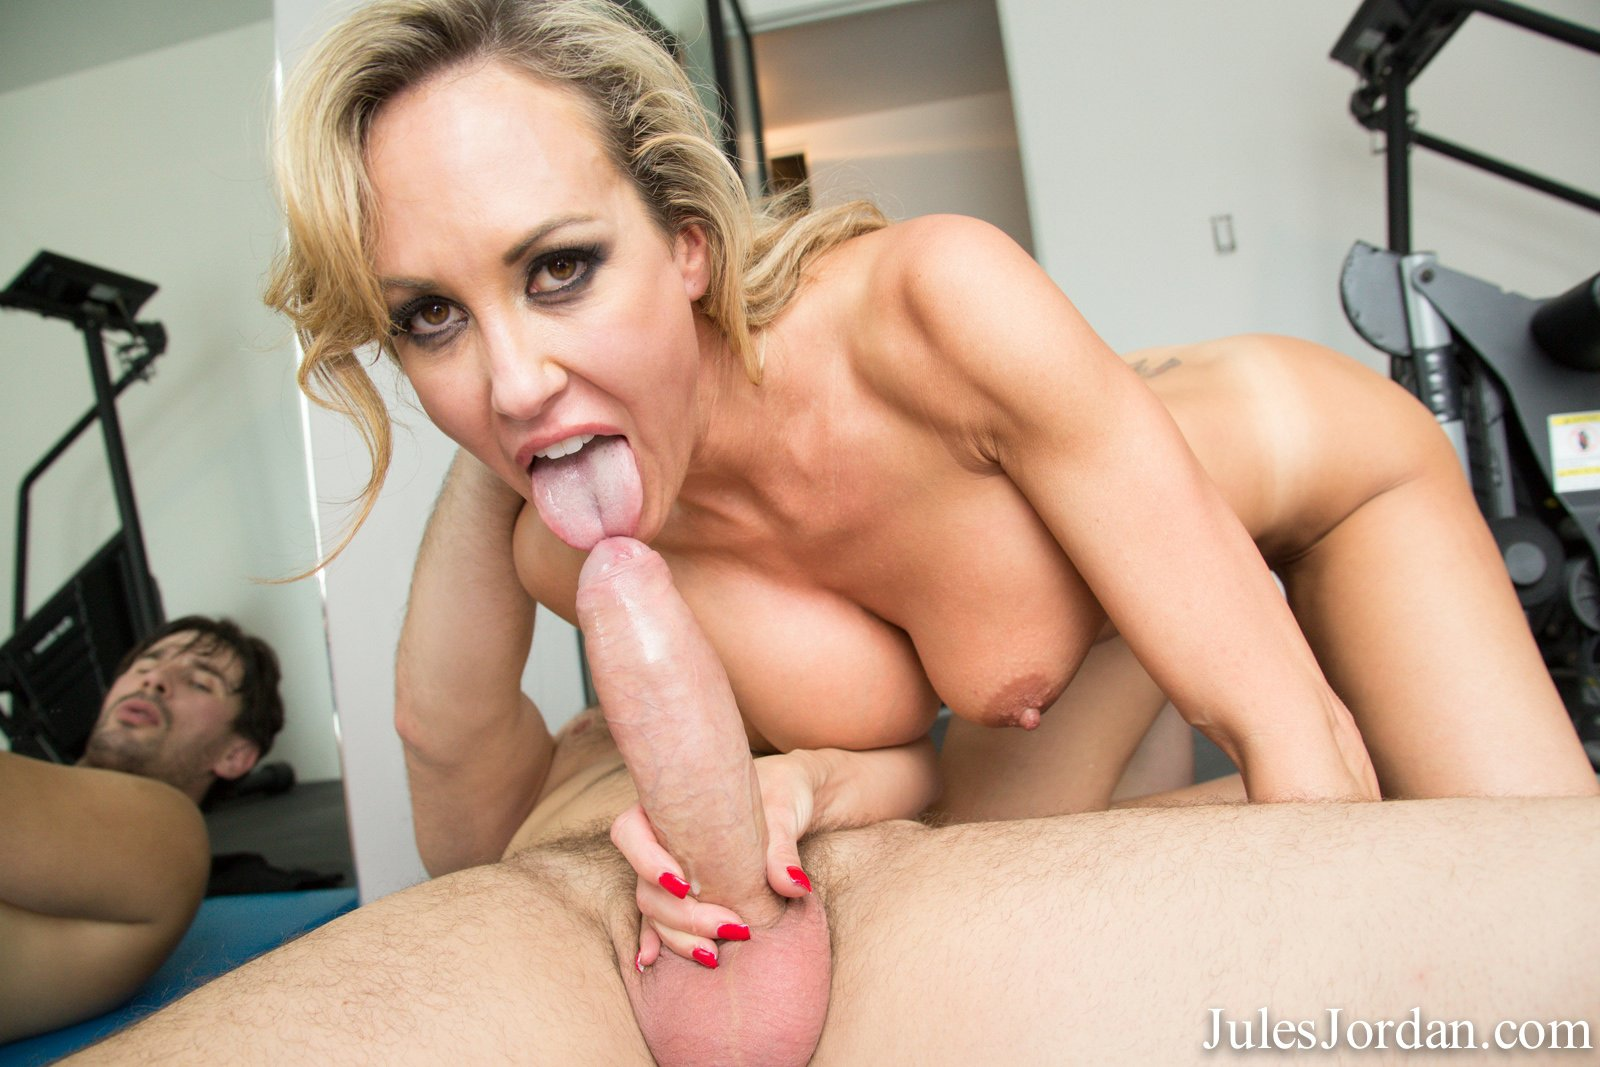 Rebecca bardoux and brandi blunt old on young lesbian sex